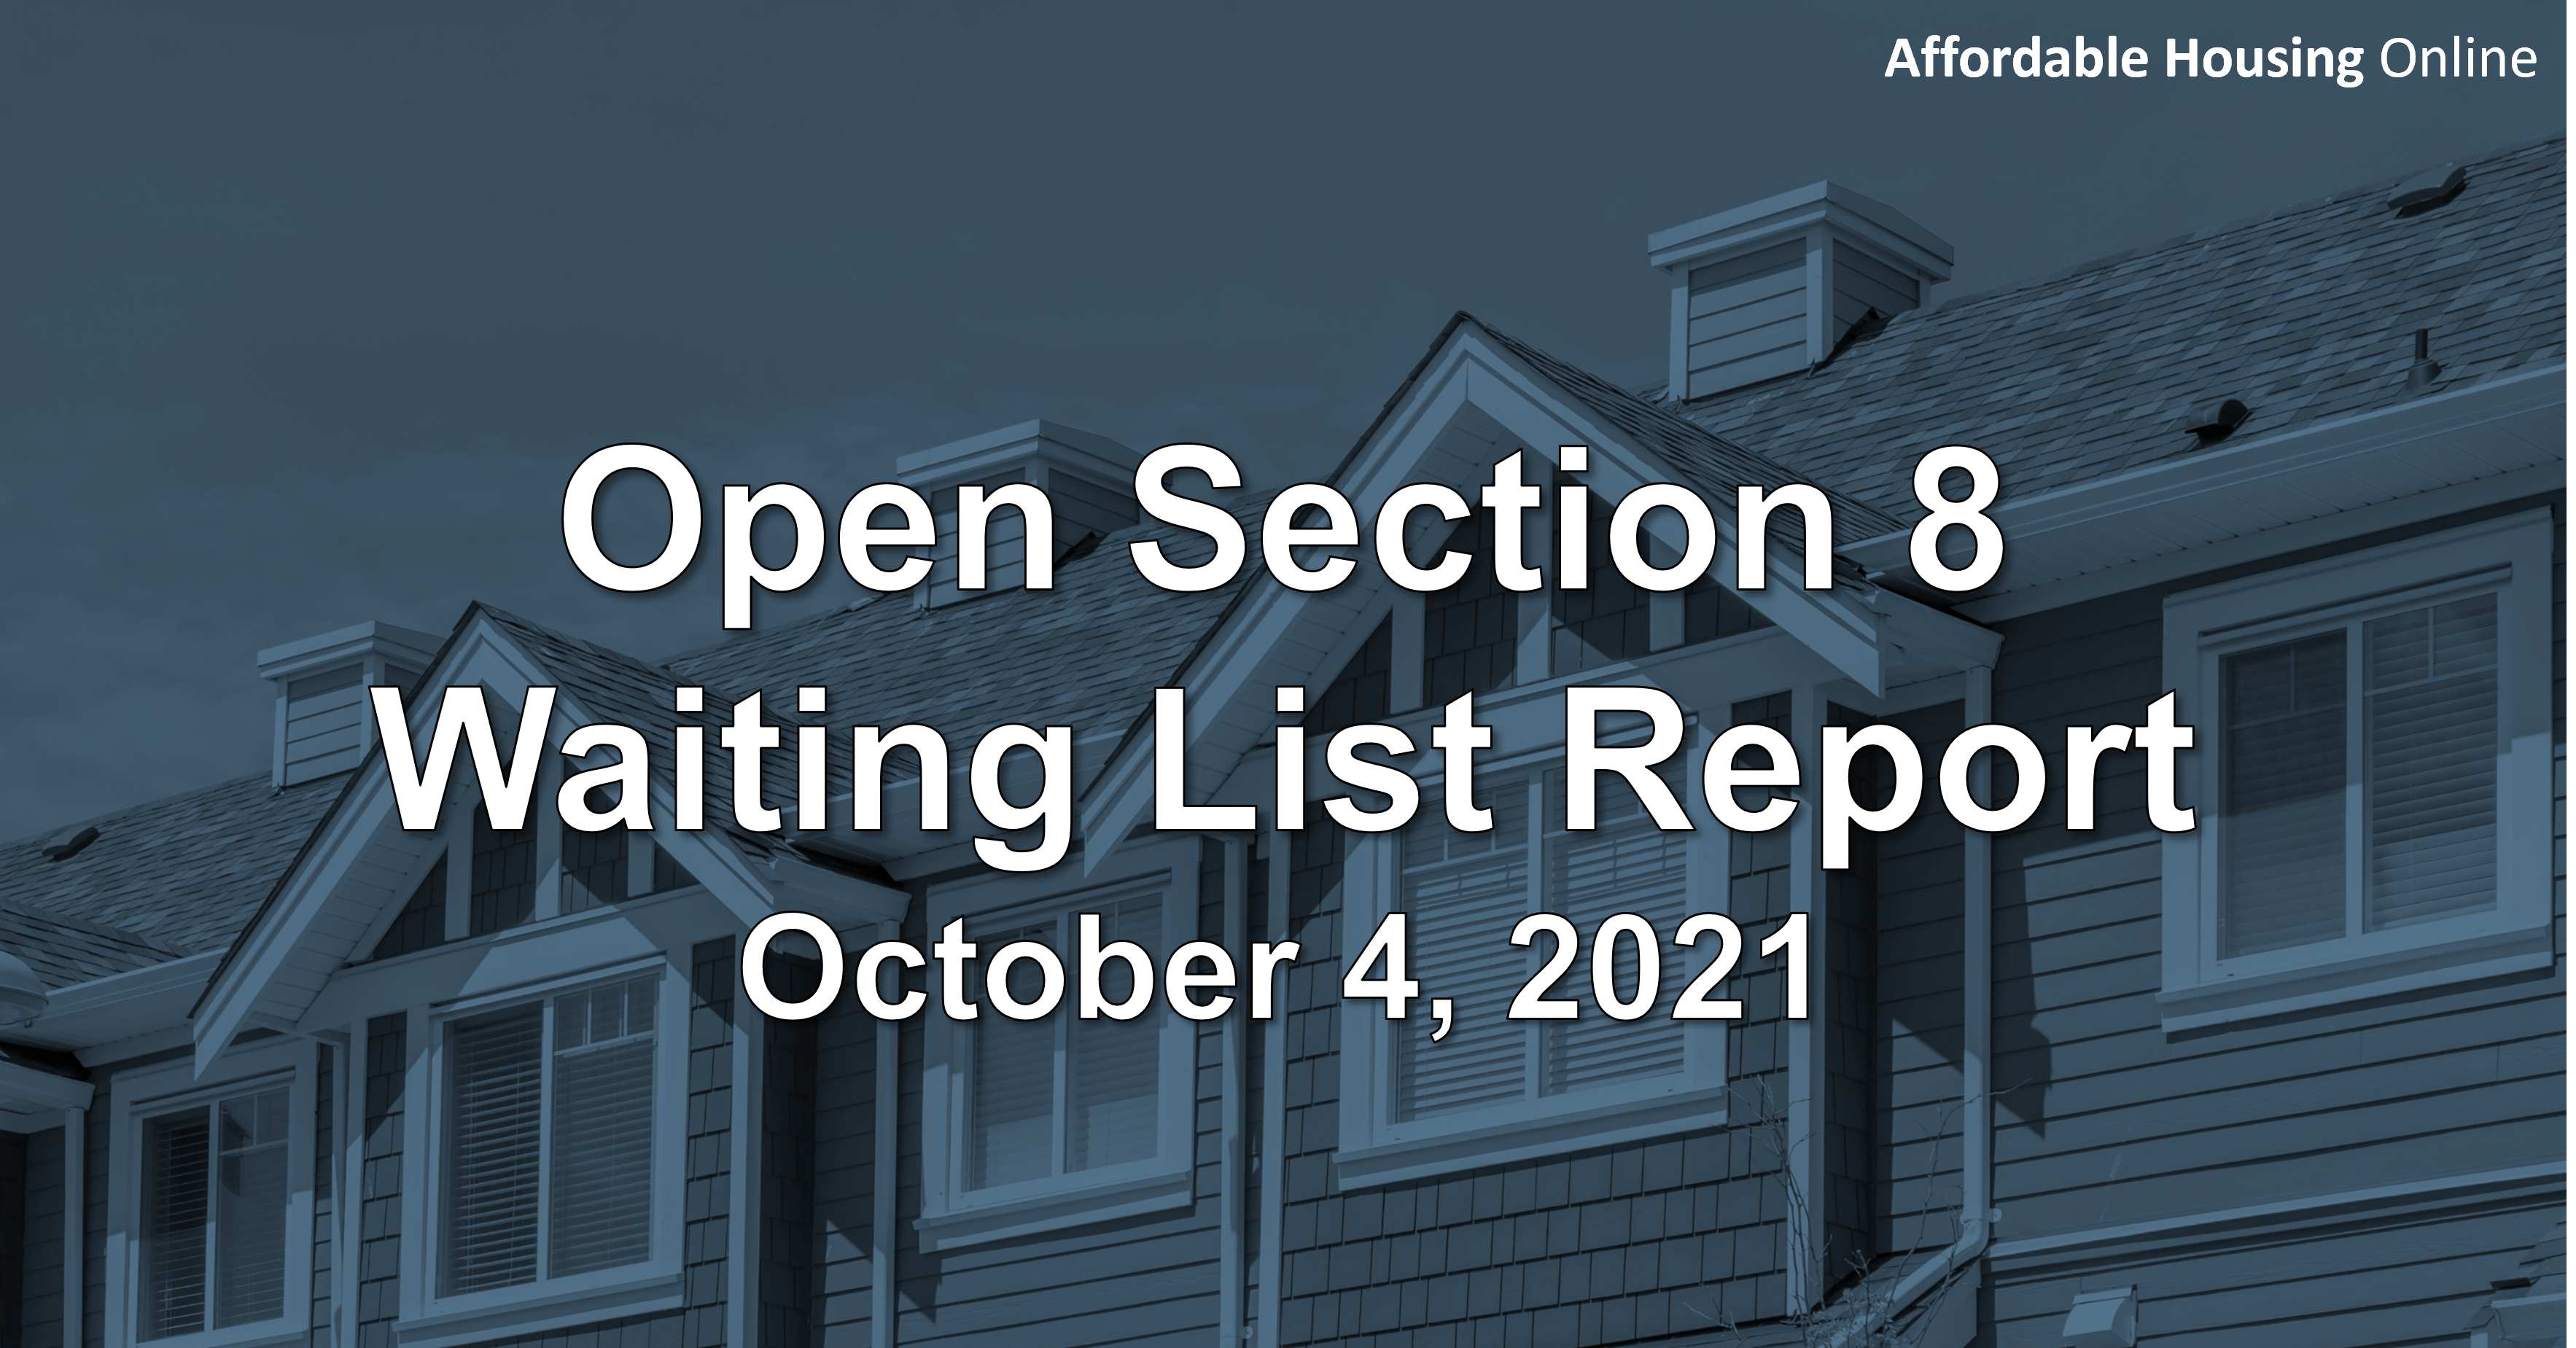 Open Section 8 Waiting List Report: October 4, 2021